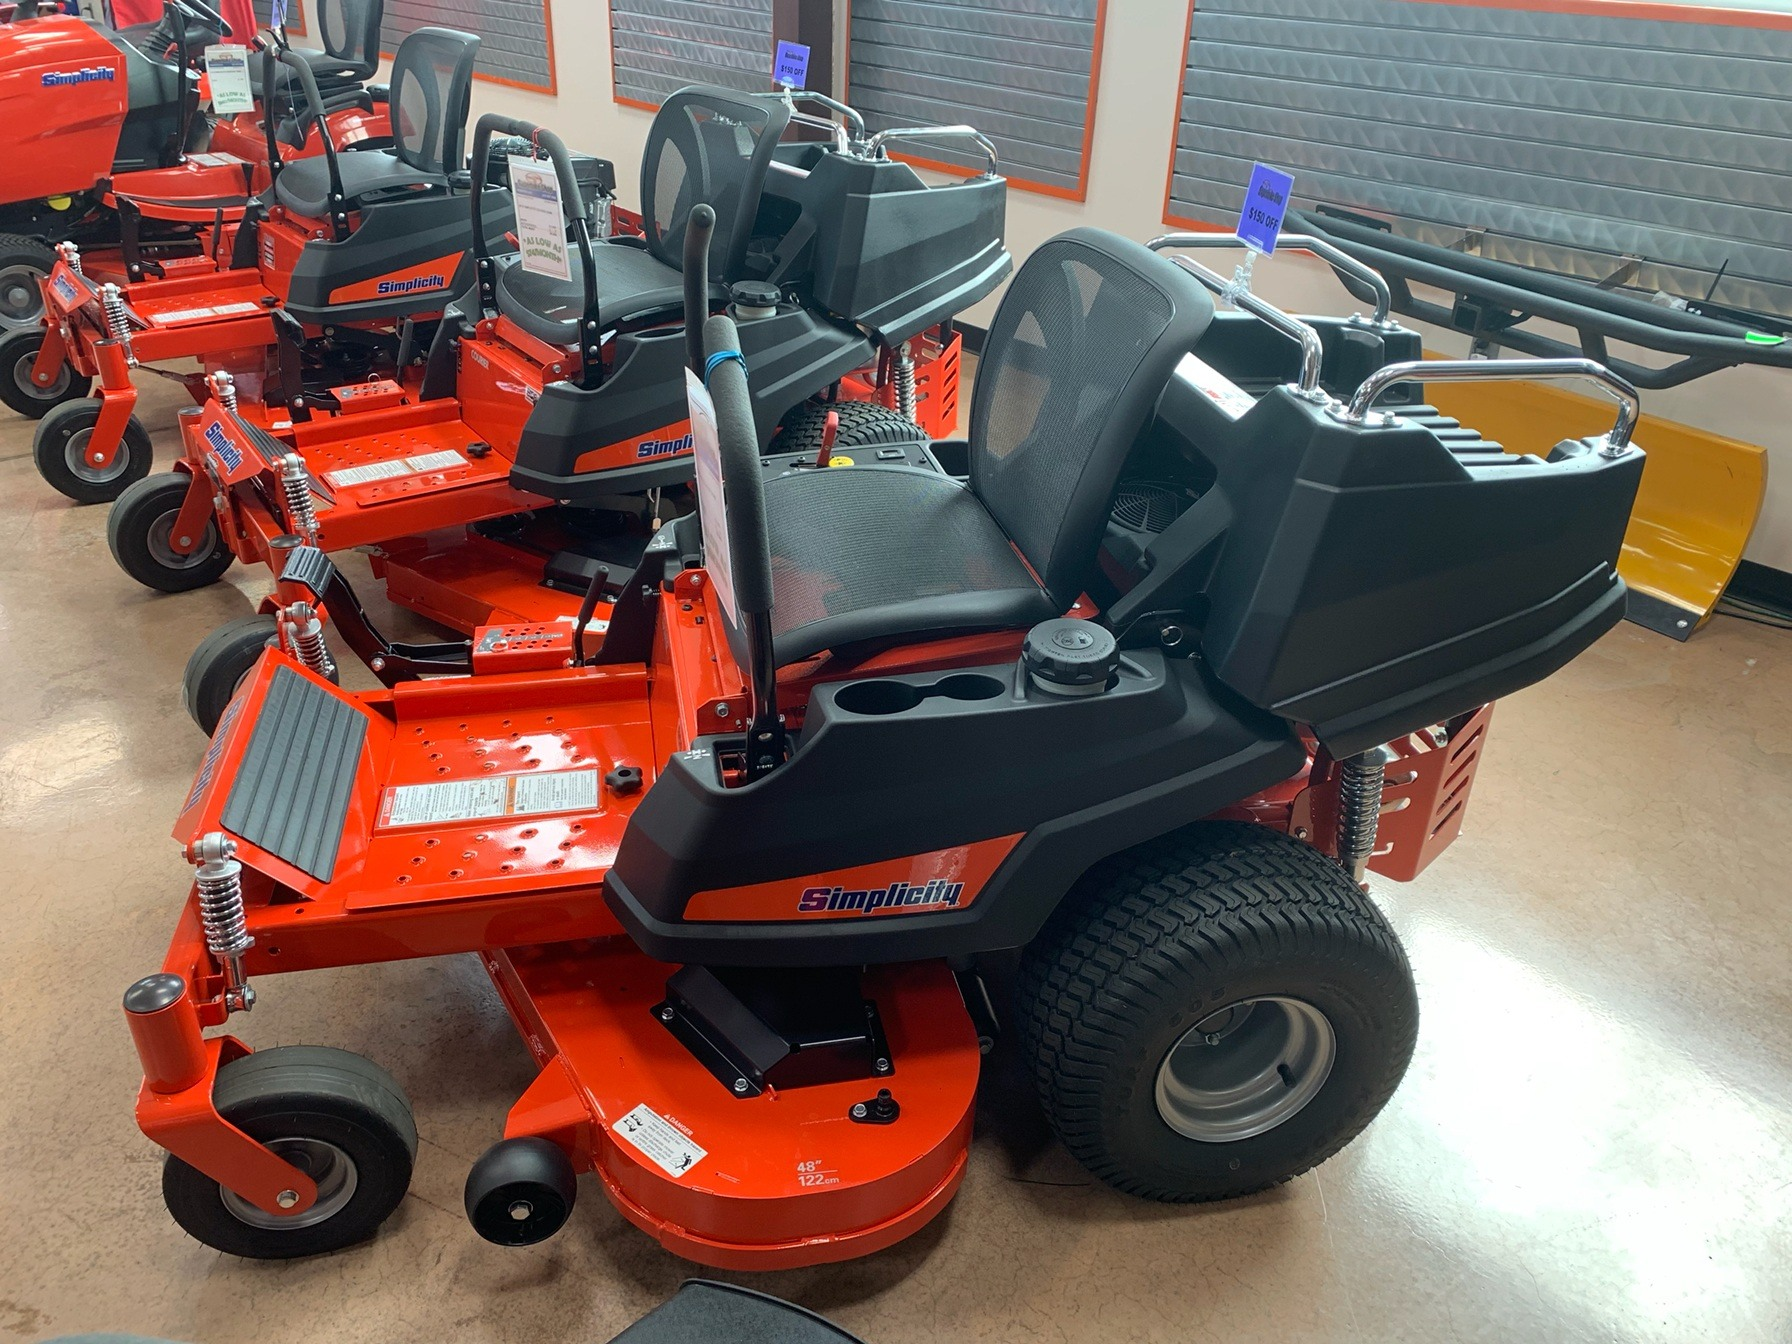 2019 Simplicity Courier 48 in. Briggs & Stratton 23 hp in Evansville, Indiana - Photo 1